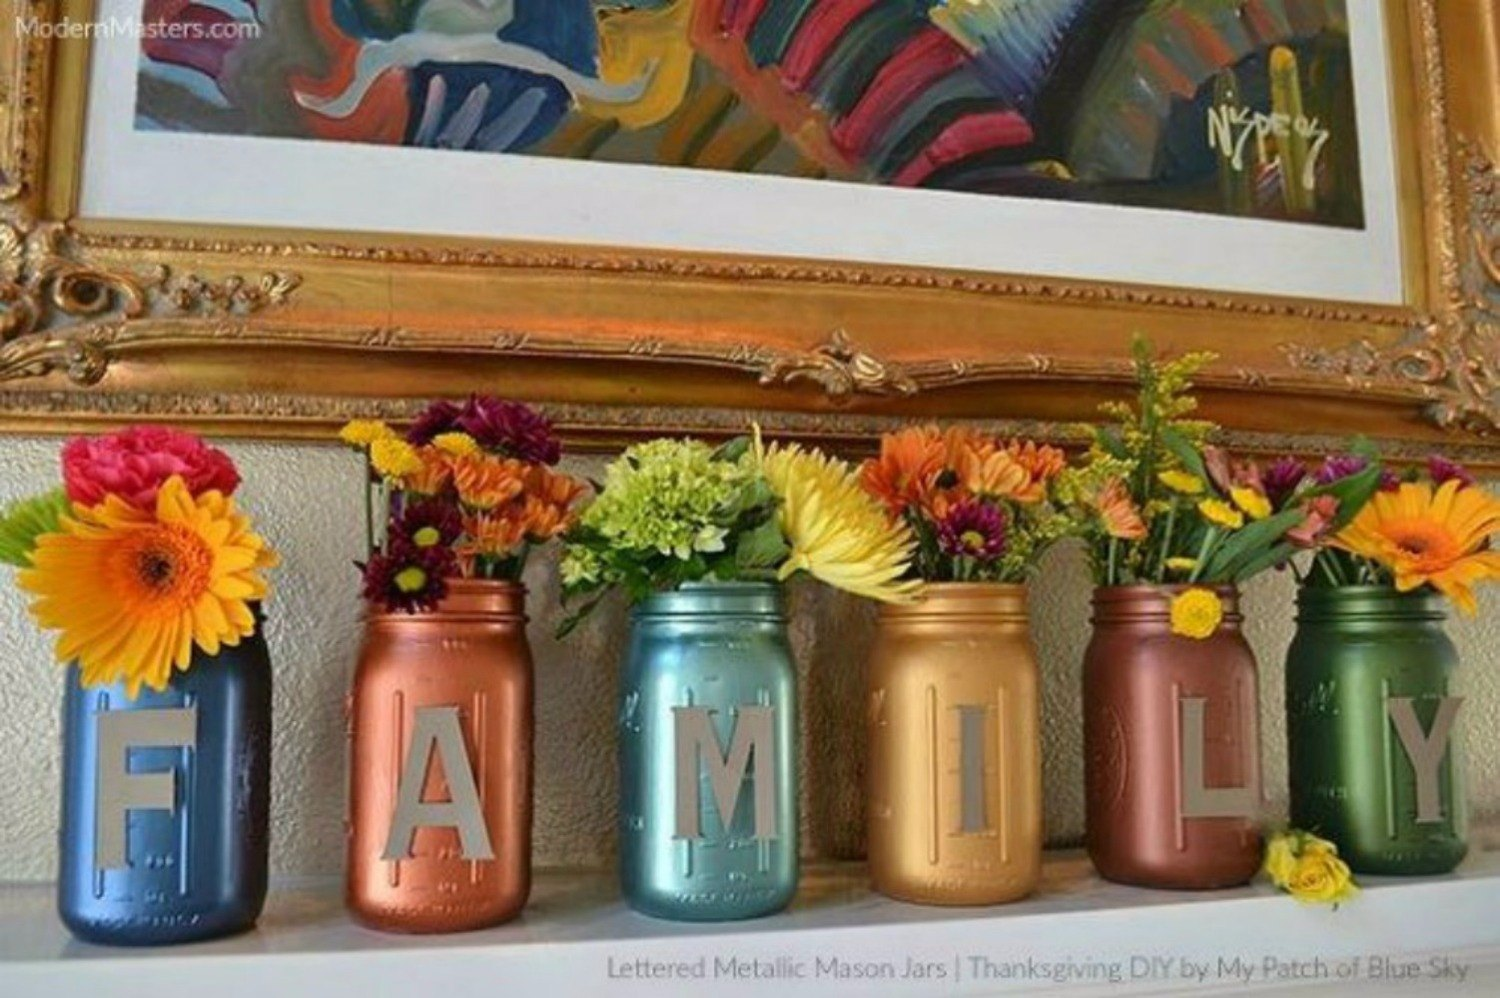 14 exciting mason jar ideas you just have to try hometalk. Black Bedroom Furniture Sets. Home Design Ideas